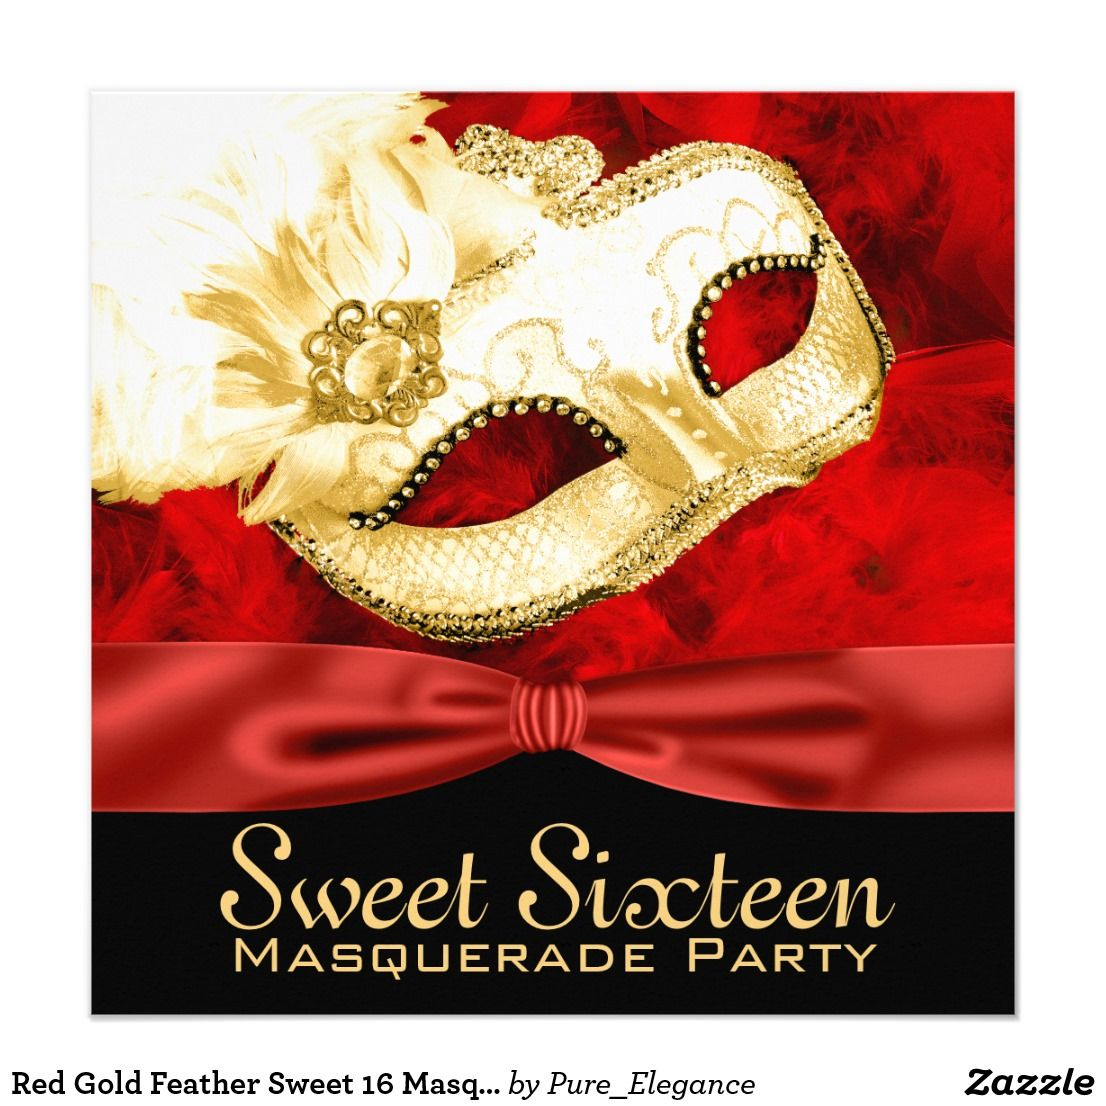 Red Gold Feather Sweet 16 Masquerade Party Card | Masquerade party ...